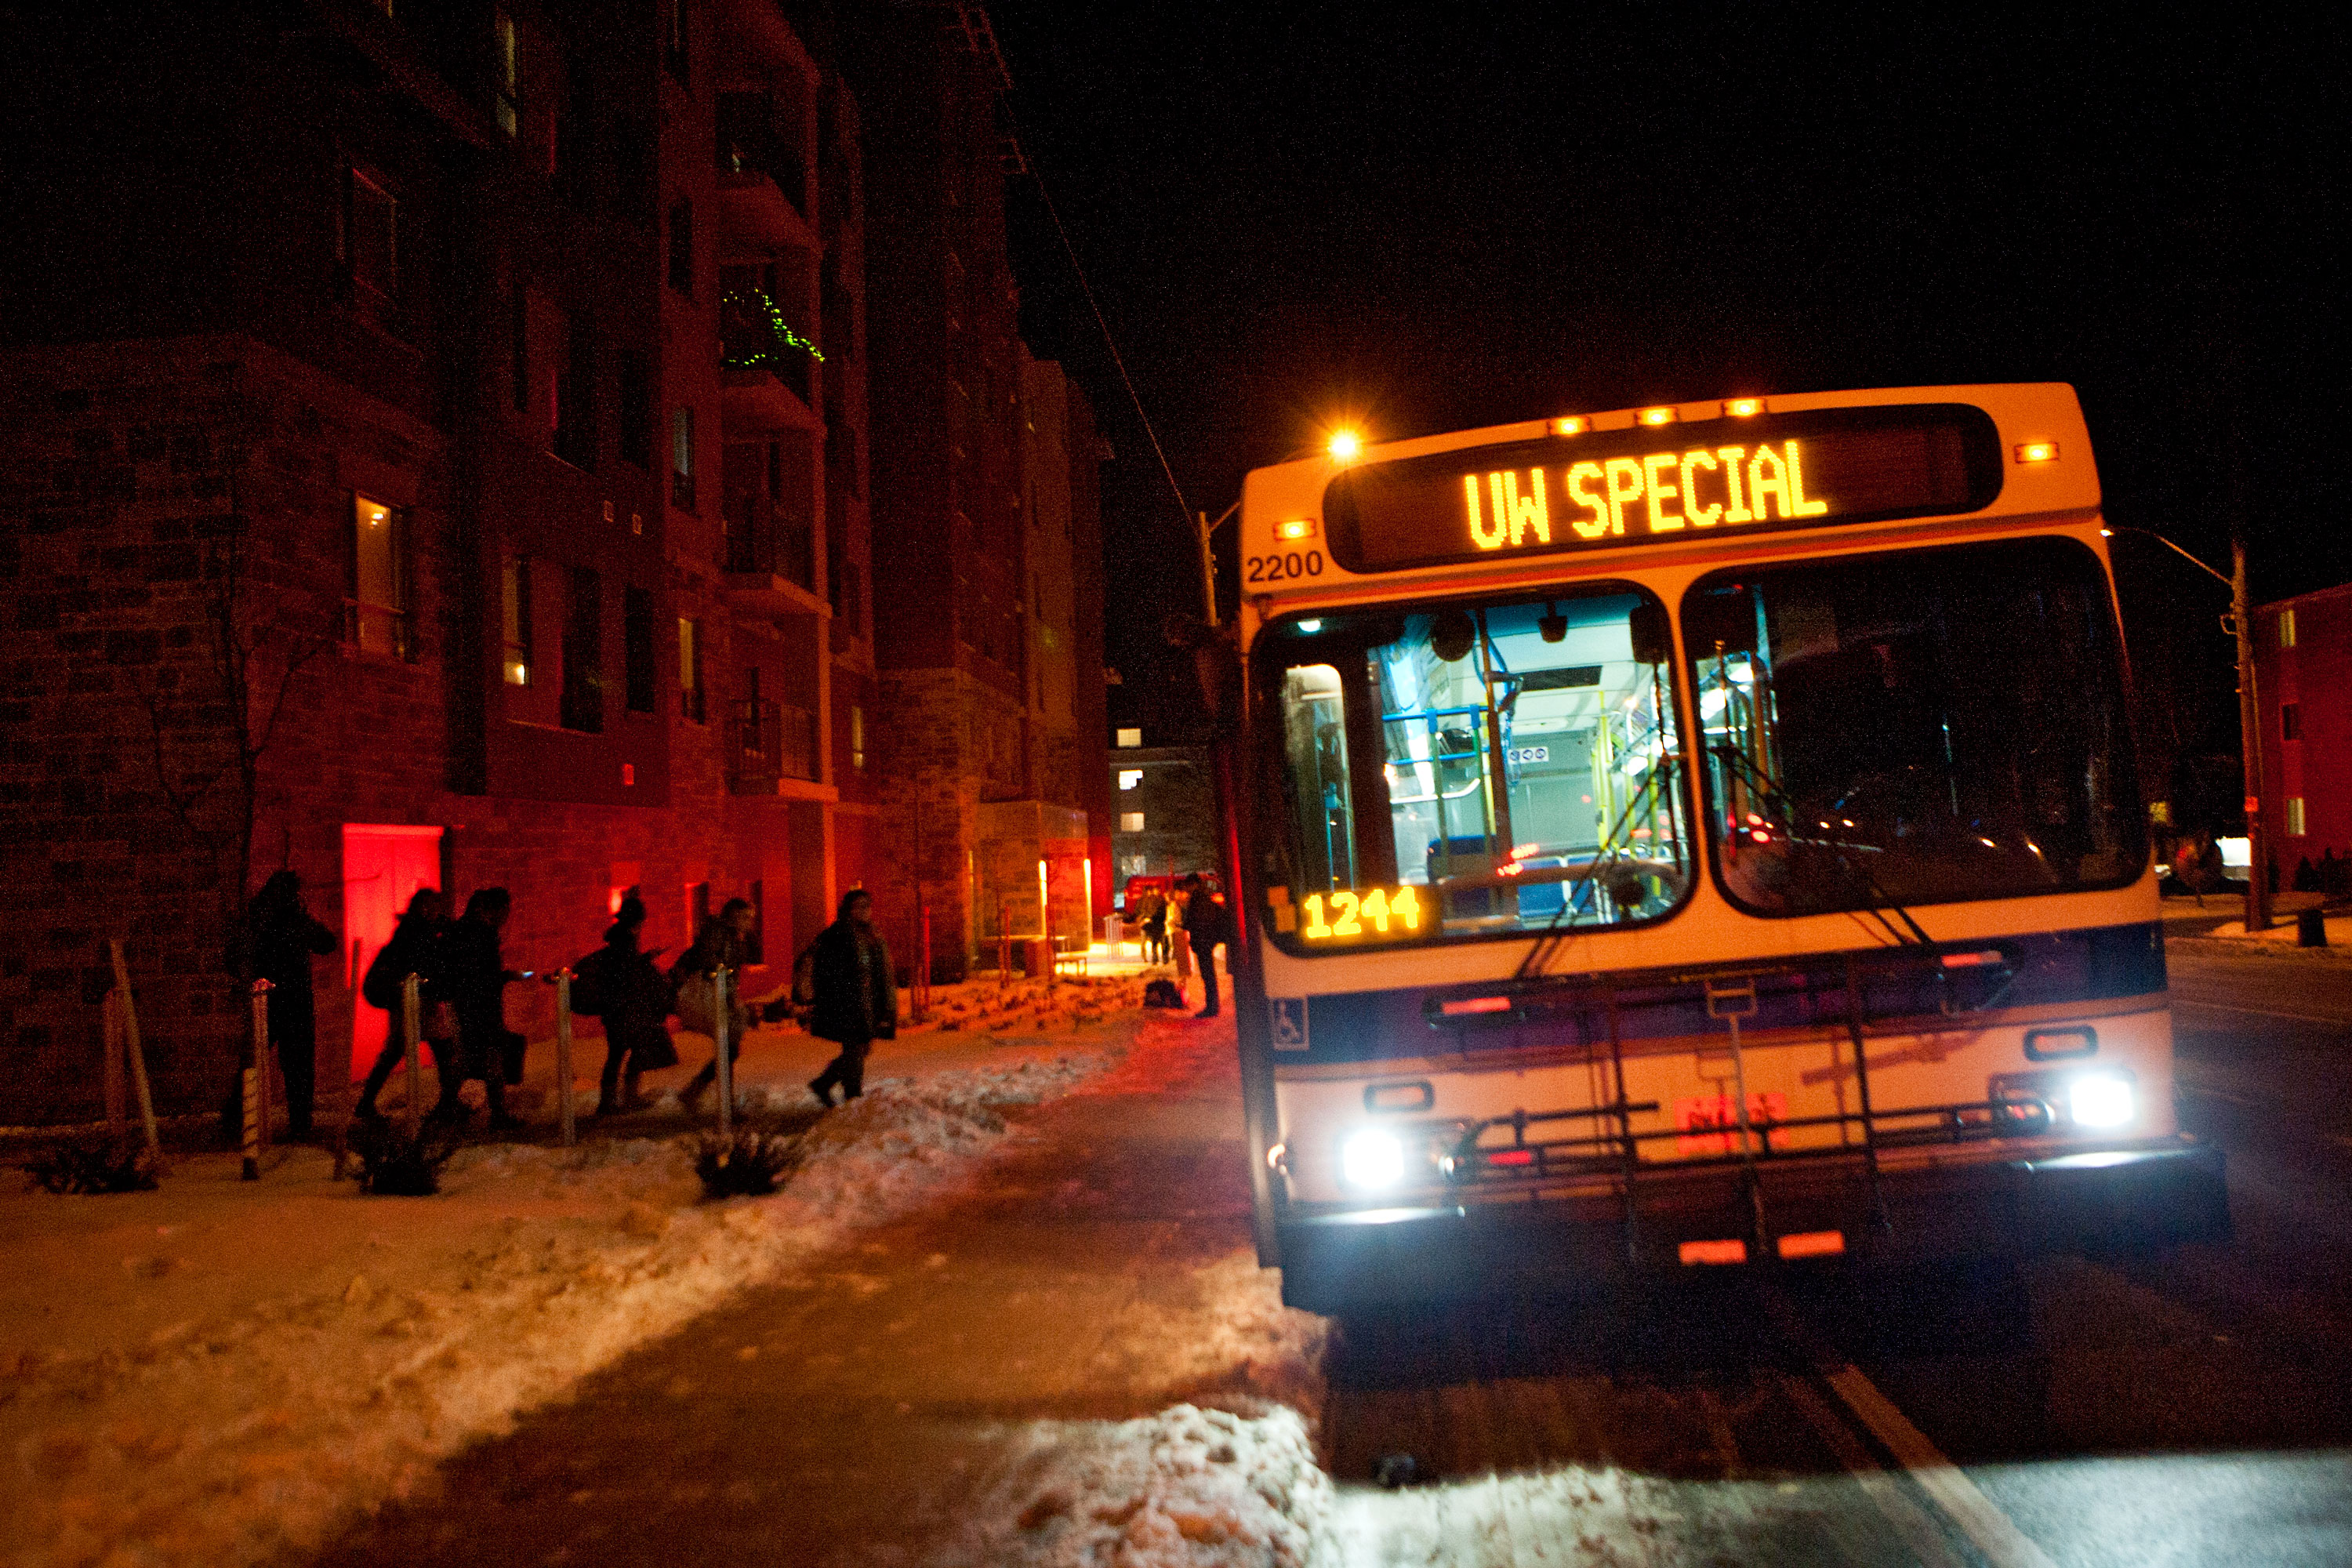 Students evacuate 21 Columbia close to 11pm on February 6, 2013. Unconfirmed initial reports suggested a fire on the forth floor caused water and possible electrical danger as the cause.